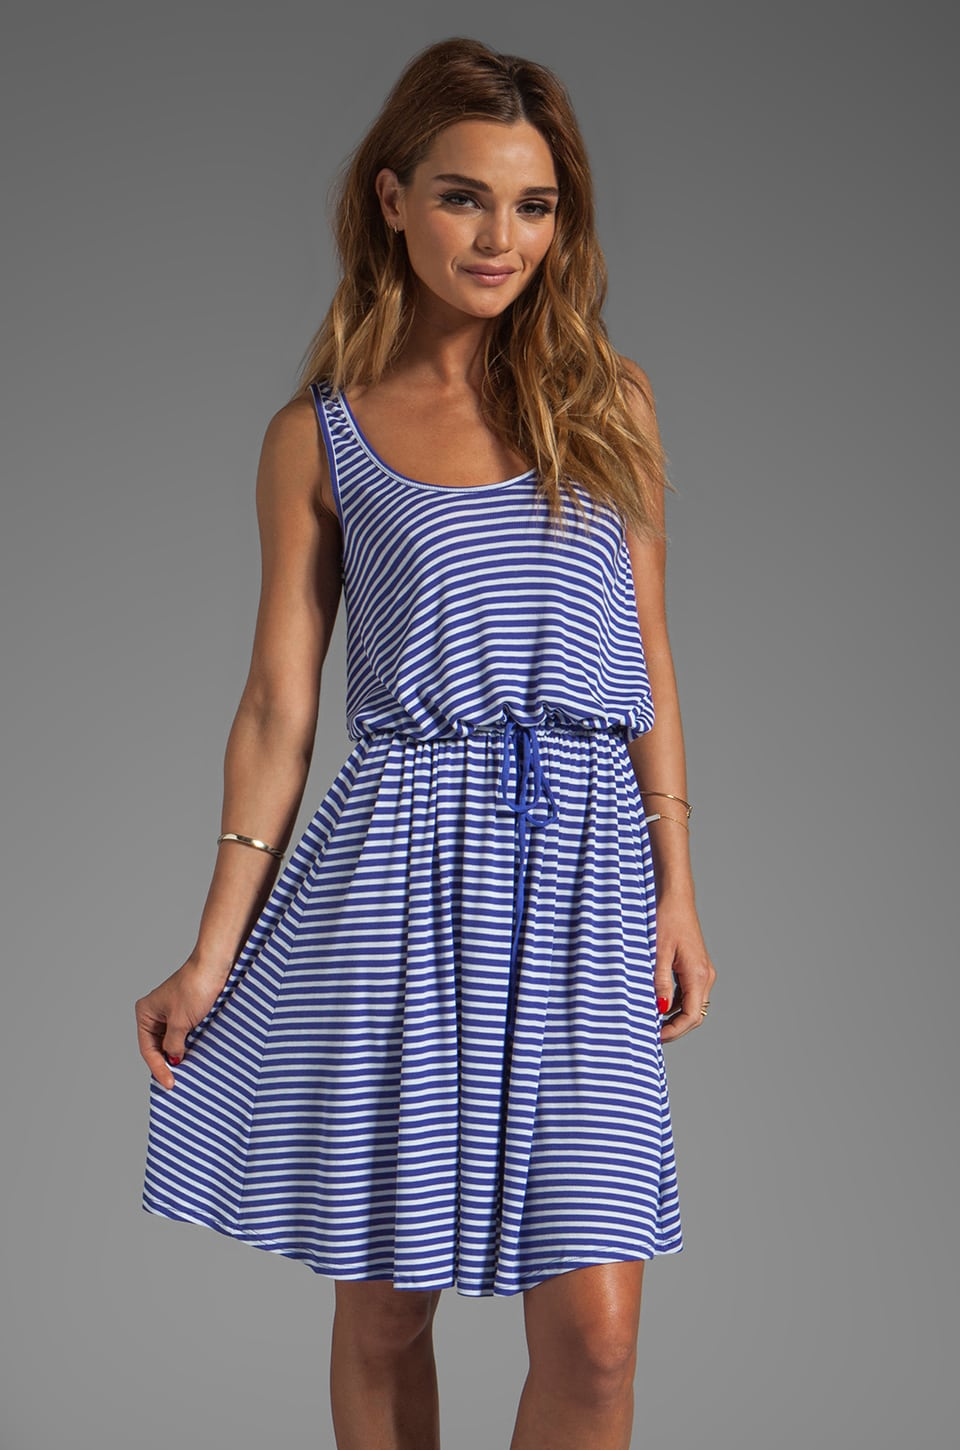 Rachel Pally Rib Freelove Tank Dress in River Stripe